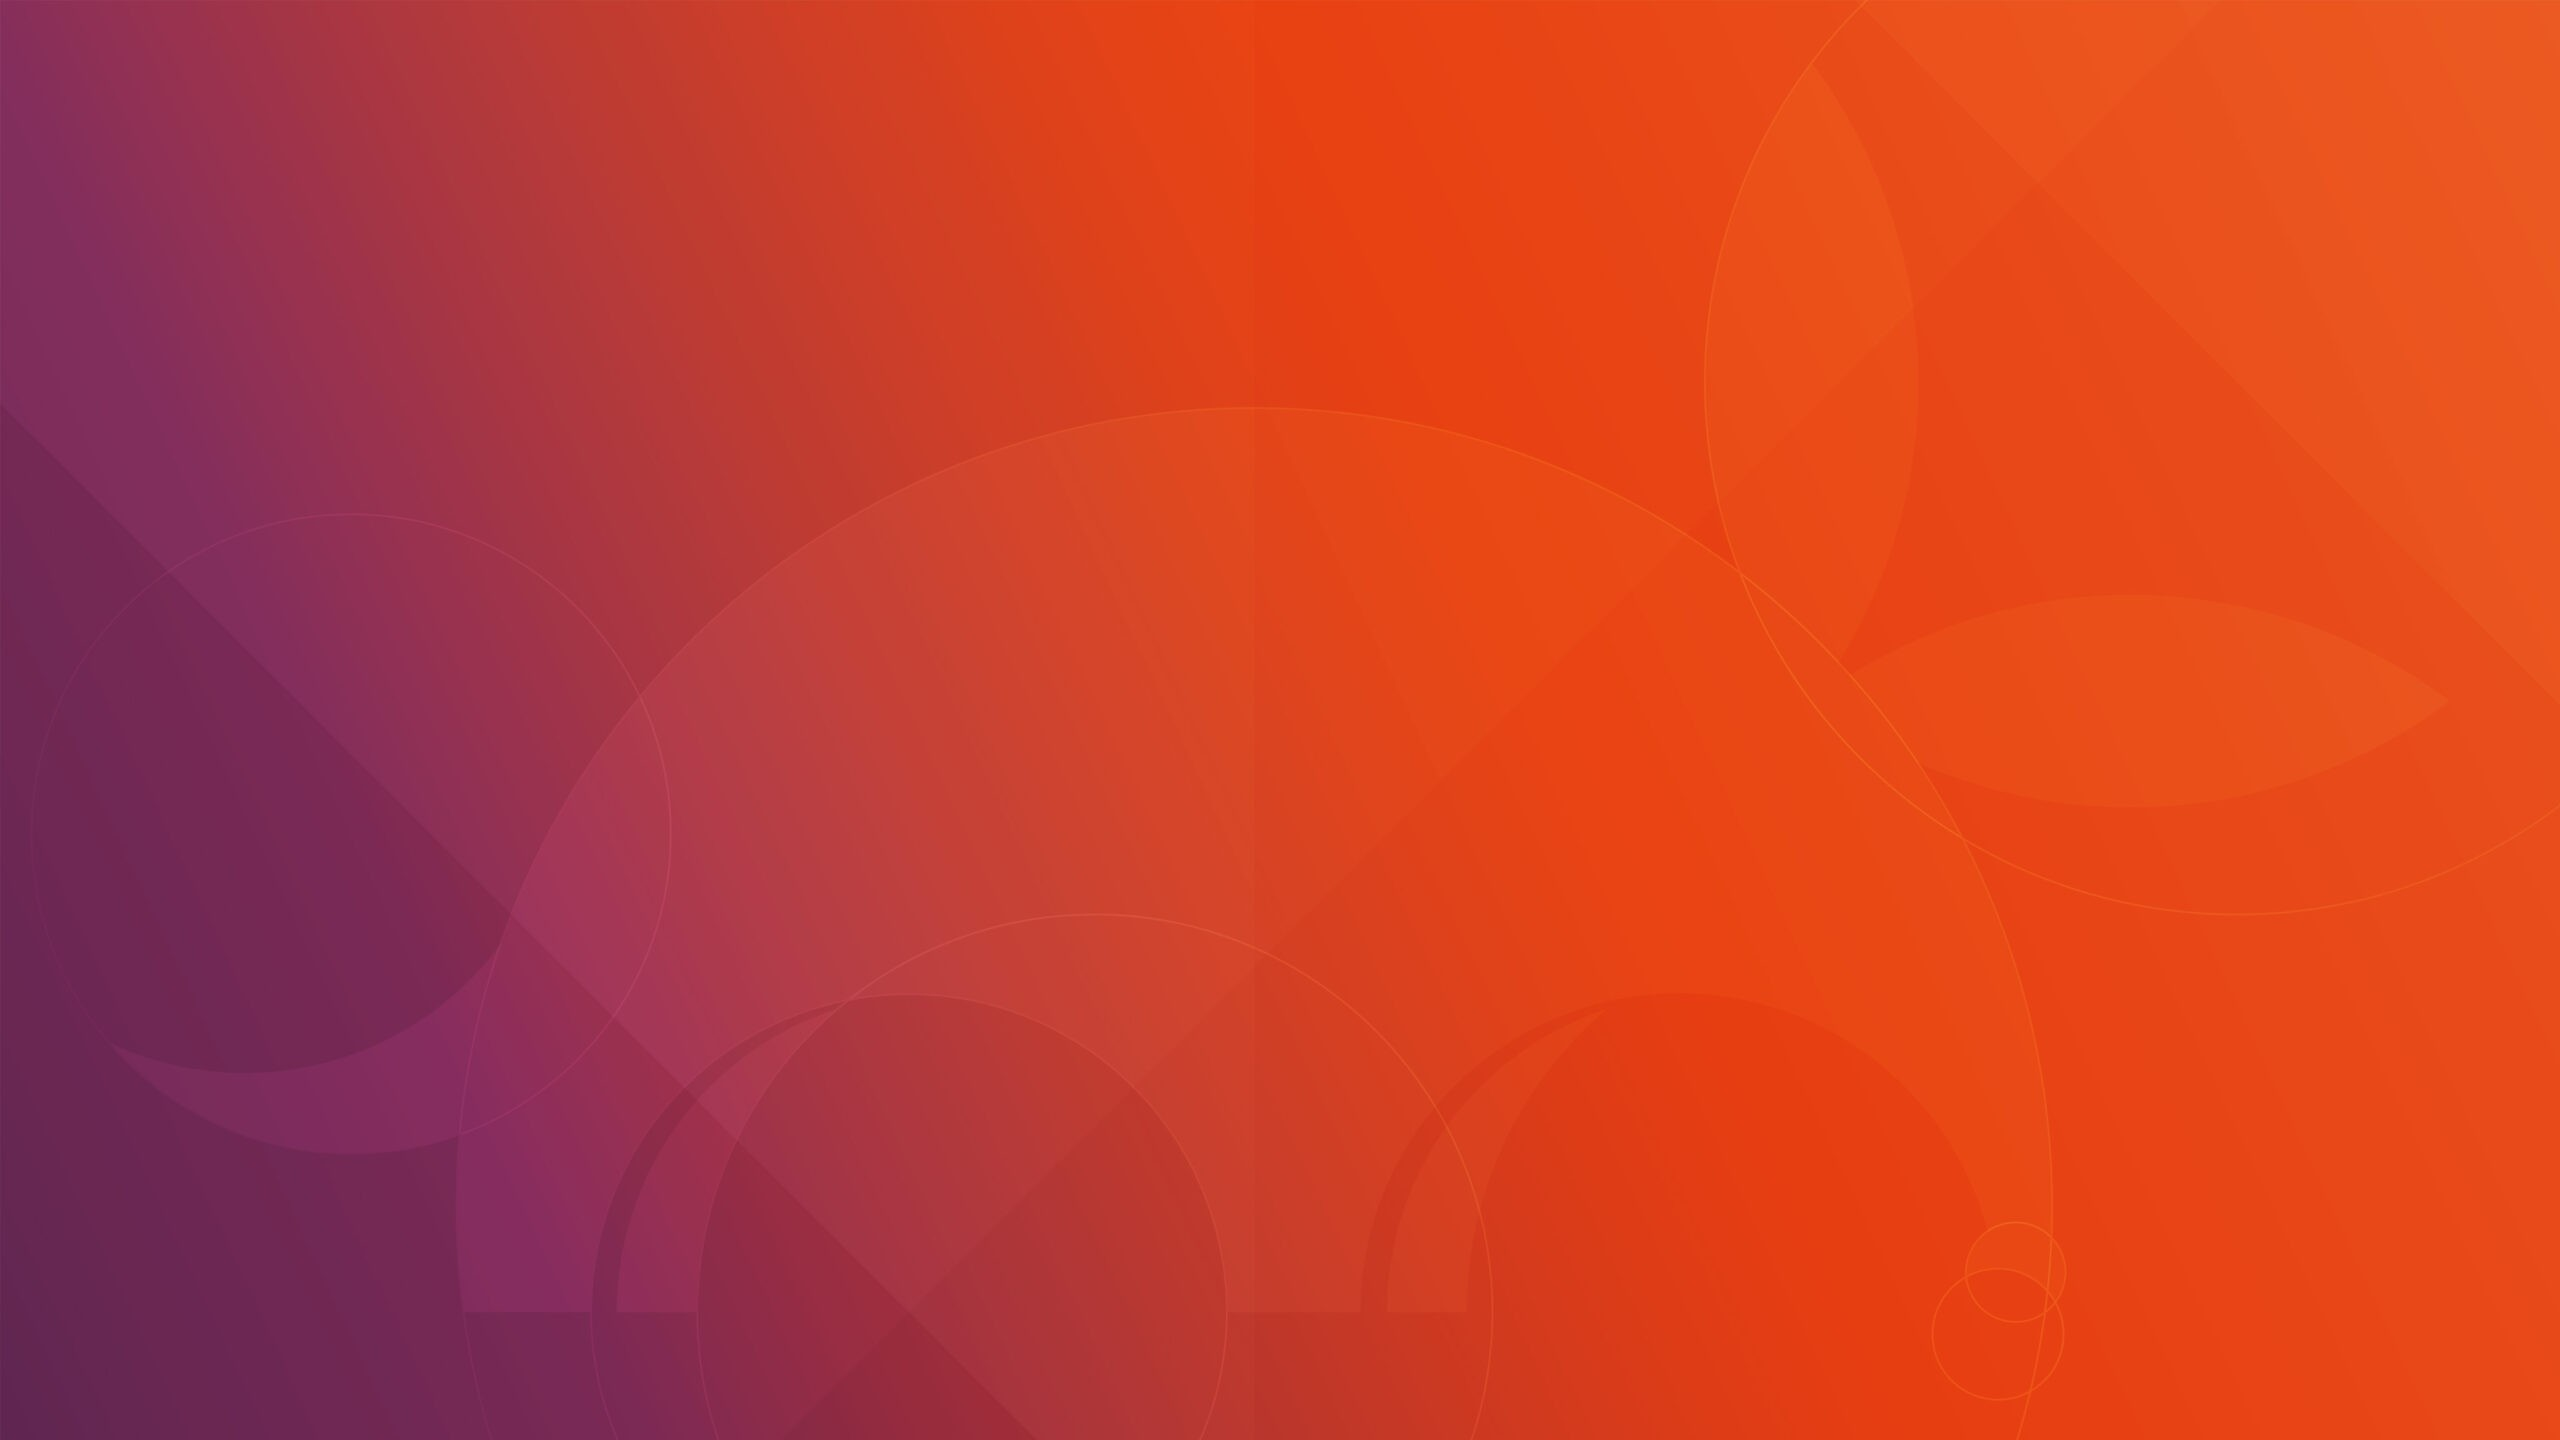 Ubuntu 17.10 Damisoft Background Wallpaper 4K